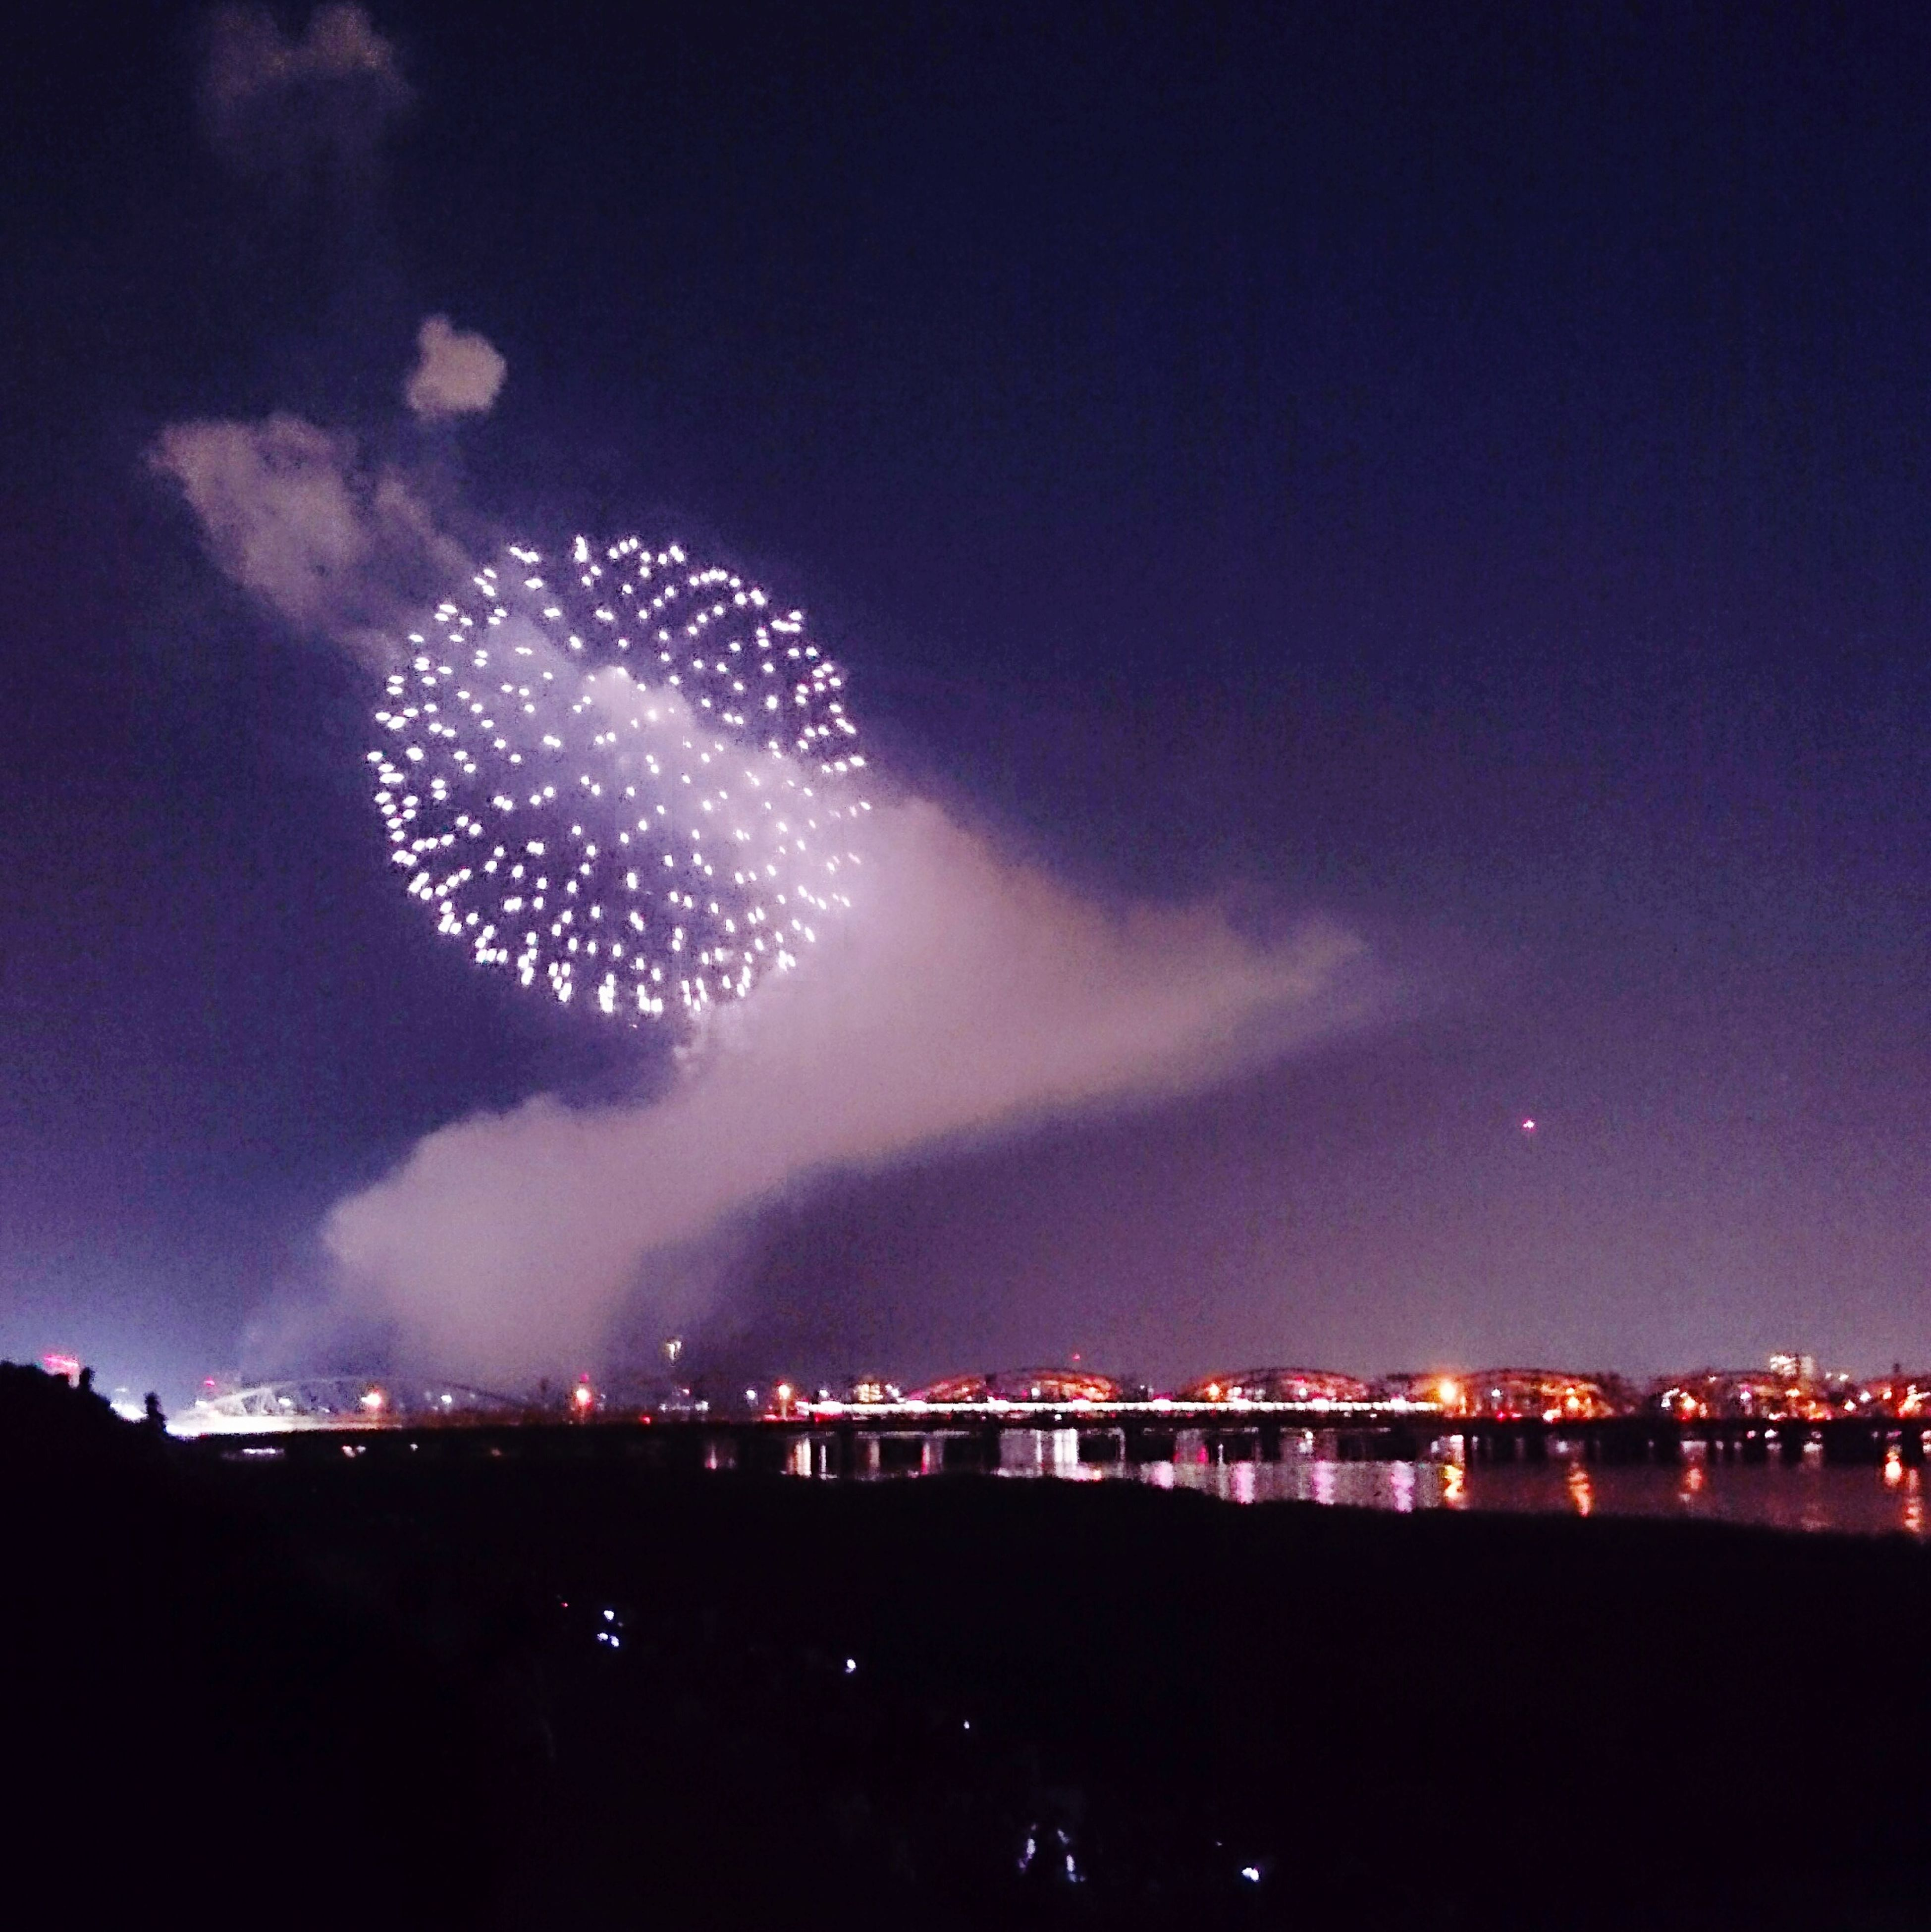 night, illuminated, sky, long exposure, firework display, exploding, glowing, building exterior, motion, firework - man made object, celebration, arts culture and entertainment, city, built structure, architecture, scenics, outdoors, light, water, light - natural phenomenon